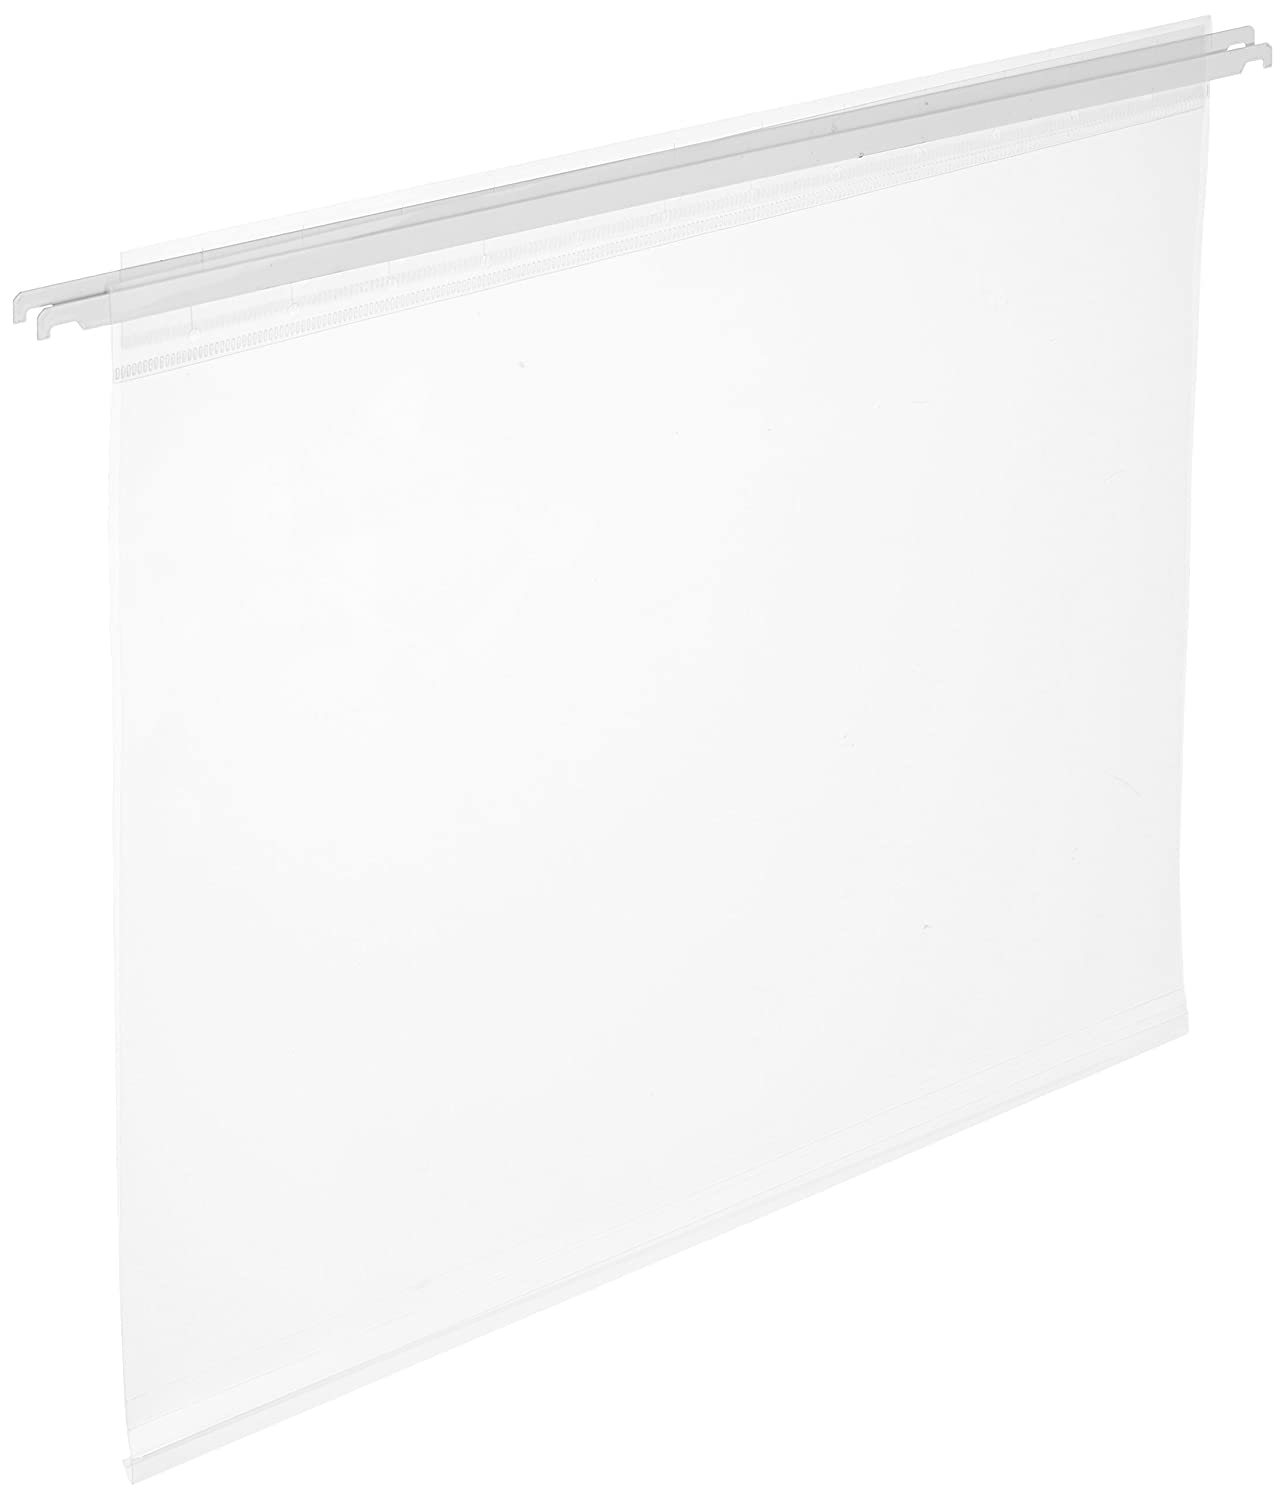 IRIS USA 150585 12 x 12 Hanging File Folders (3 Pack), Clear Inc.